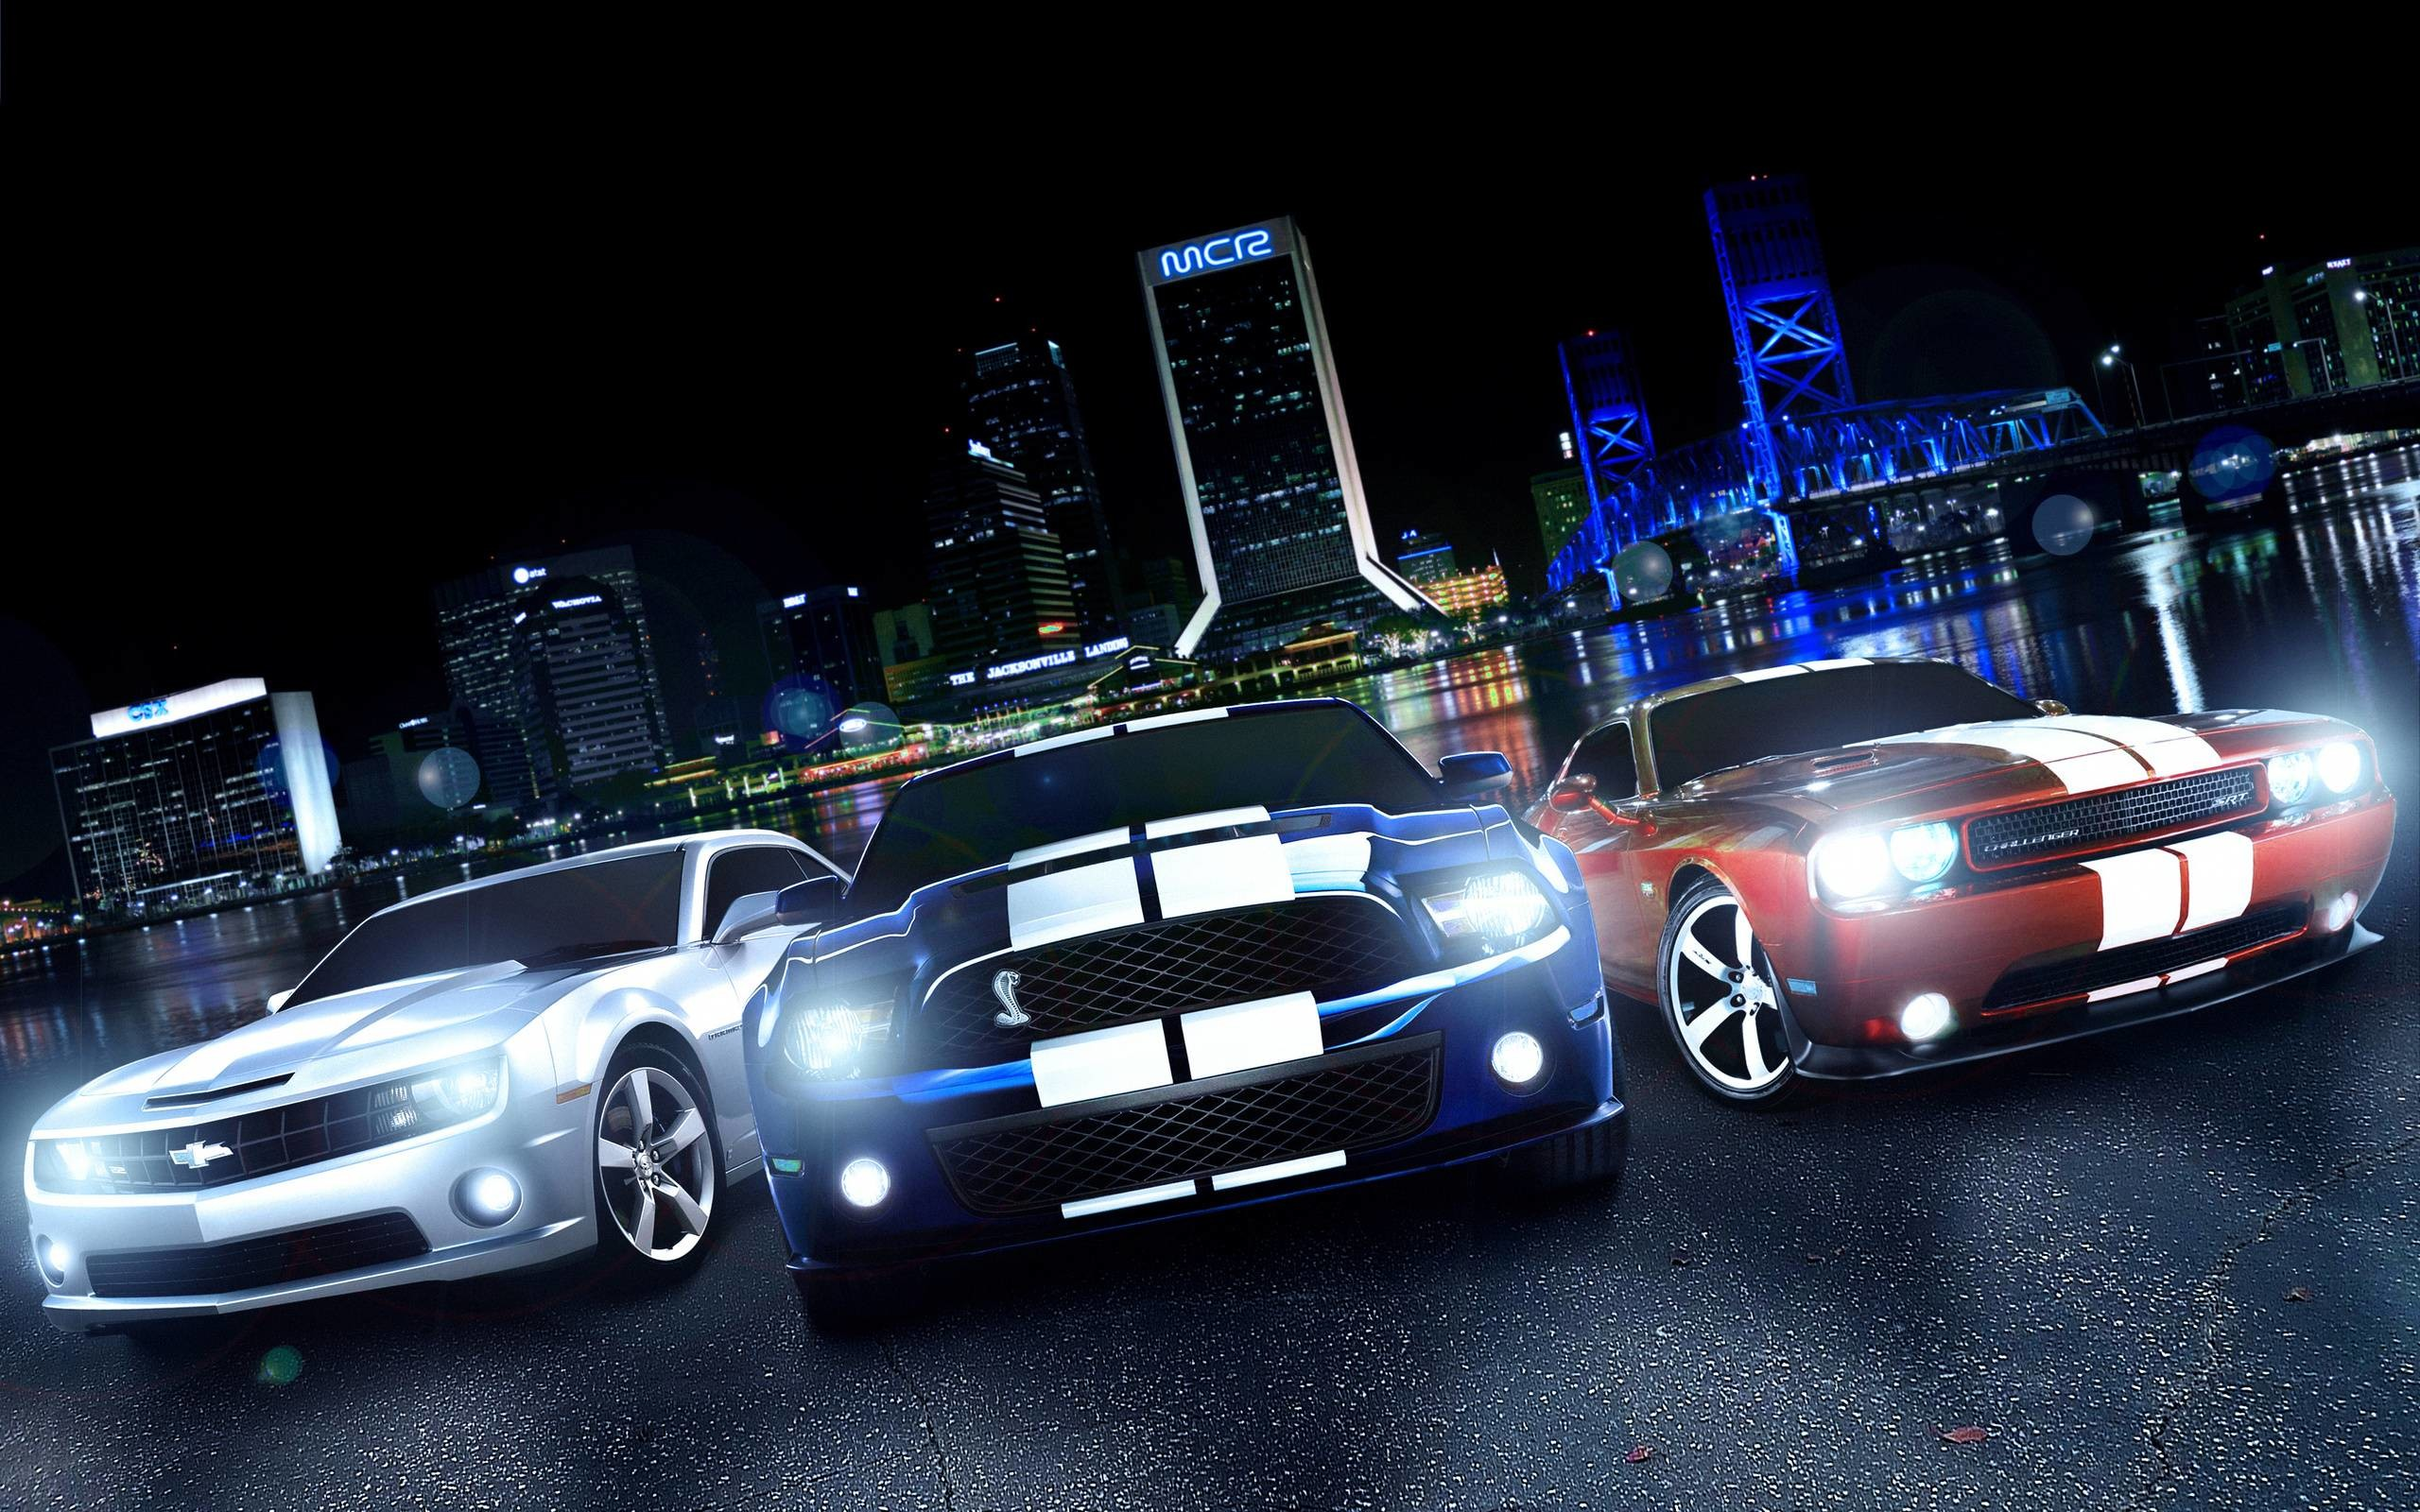 2560x1600 Muscle Cars Wallpapers - Full HD wallpaper search